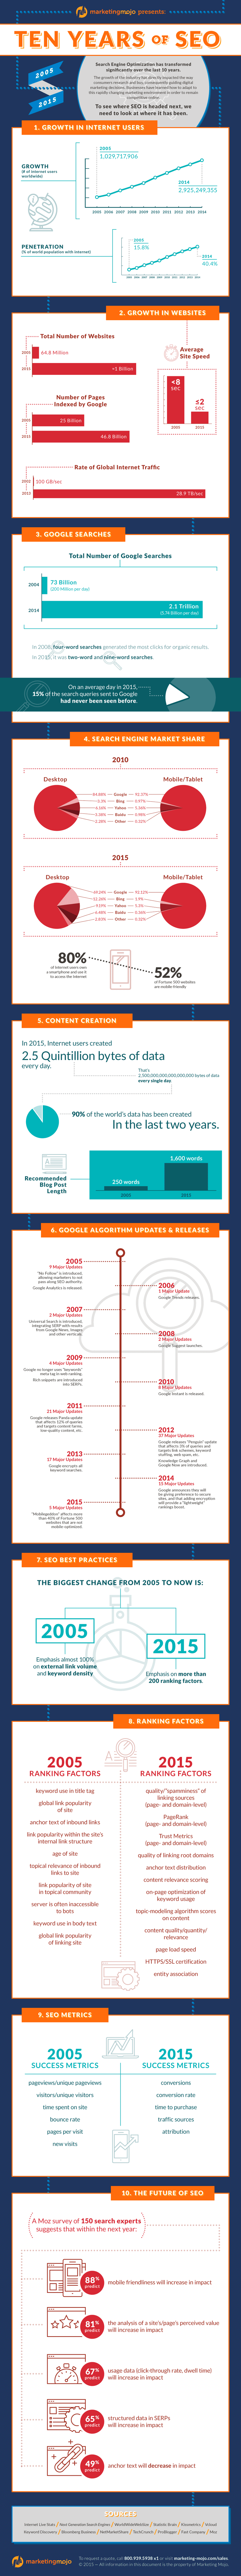 10 Years of SEO Infographic